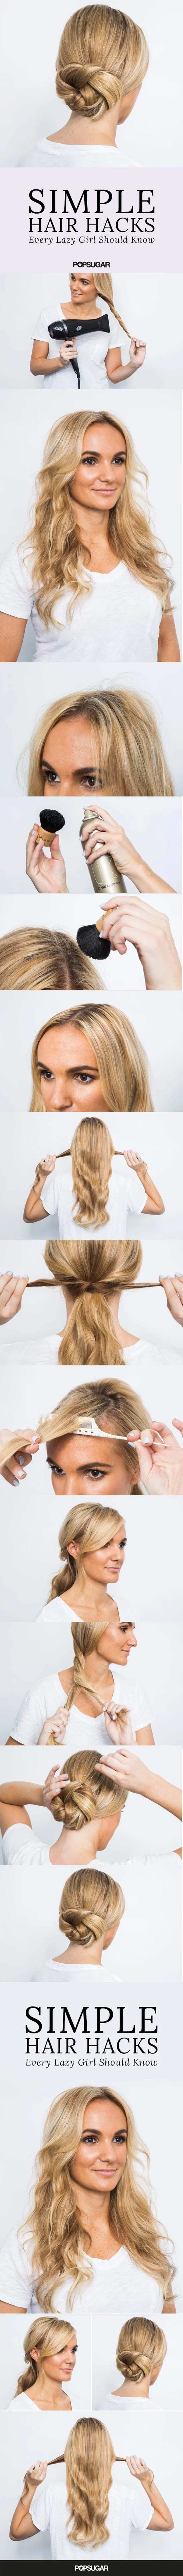 Beauty Hacks for Teens - Simple Hair Hacks - DIY Makeup Tips and Hacks for Skin, Hairstyles, Acne, Bras and Everything in Between - Pictures and Video Tutorials for Girls of All Shapes and Sizes Whether You're Fit or Want to Lose Weight - Get in Shape for Summer with These Awesome Ideas - thegoddess.com/beauty-hacks-teens